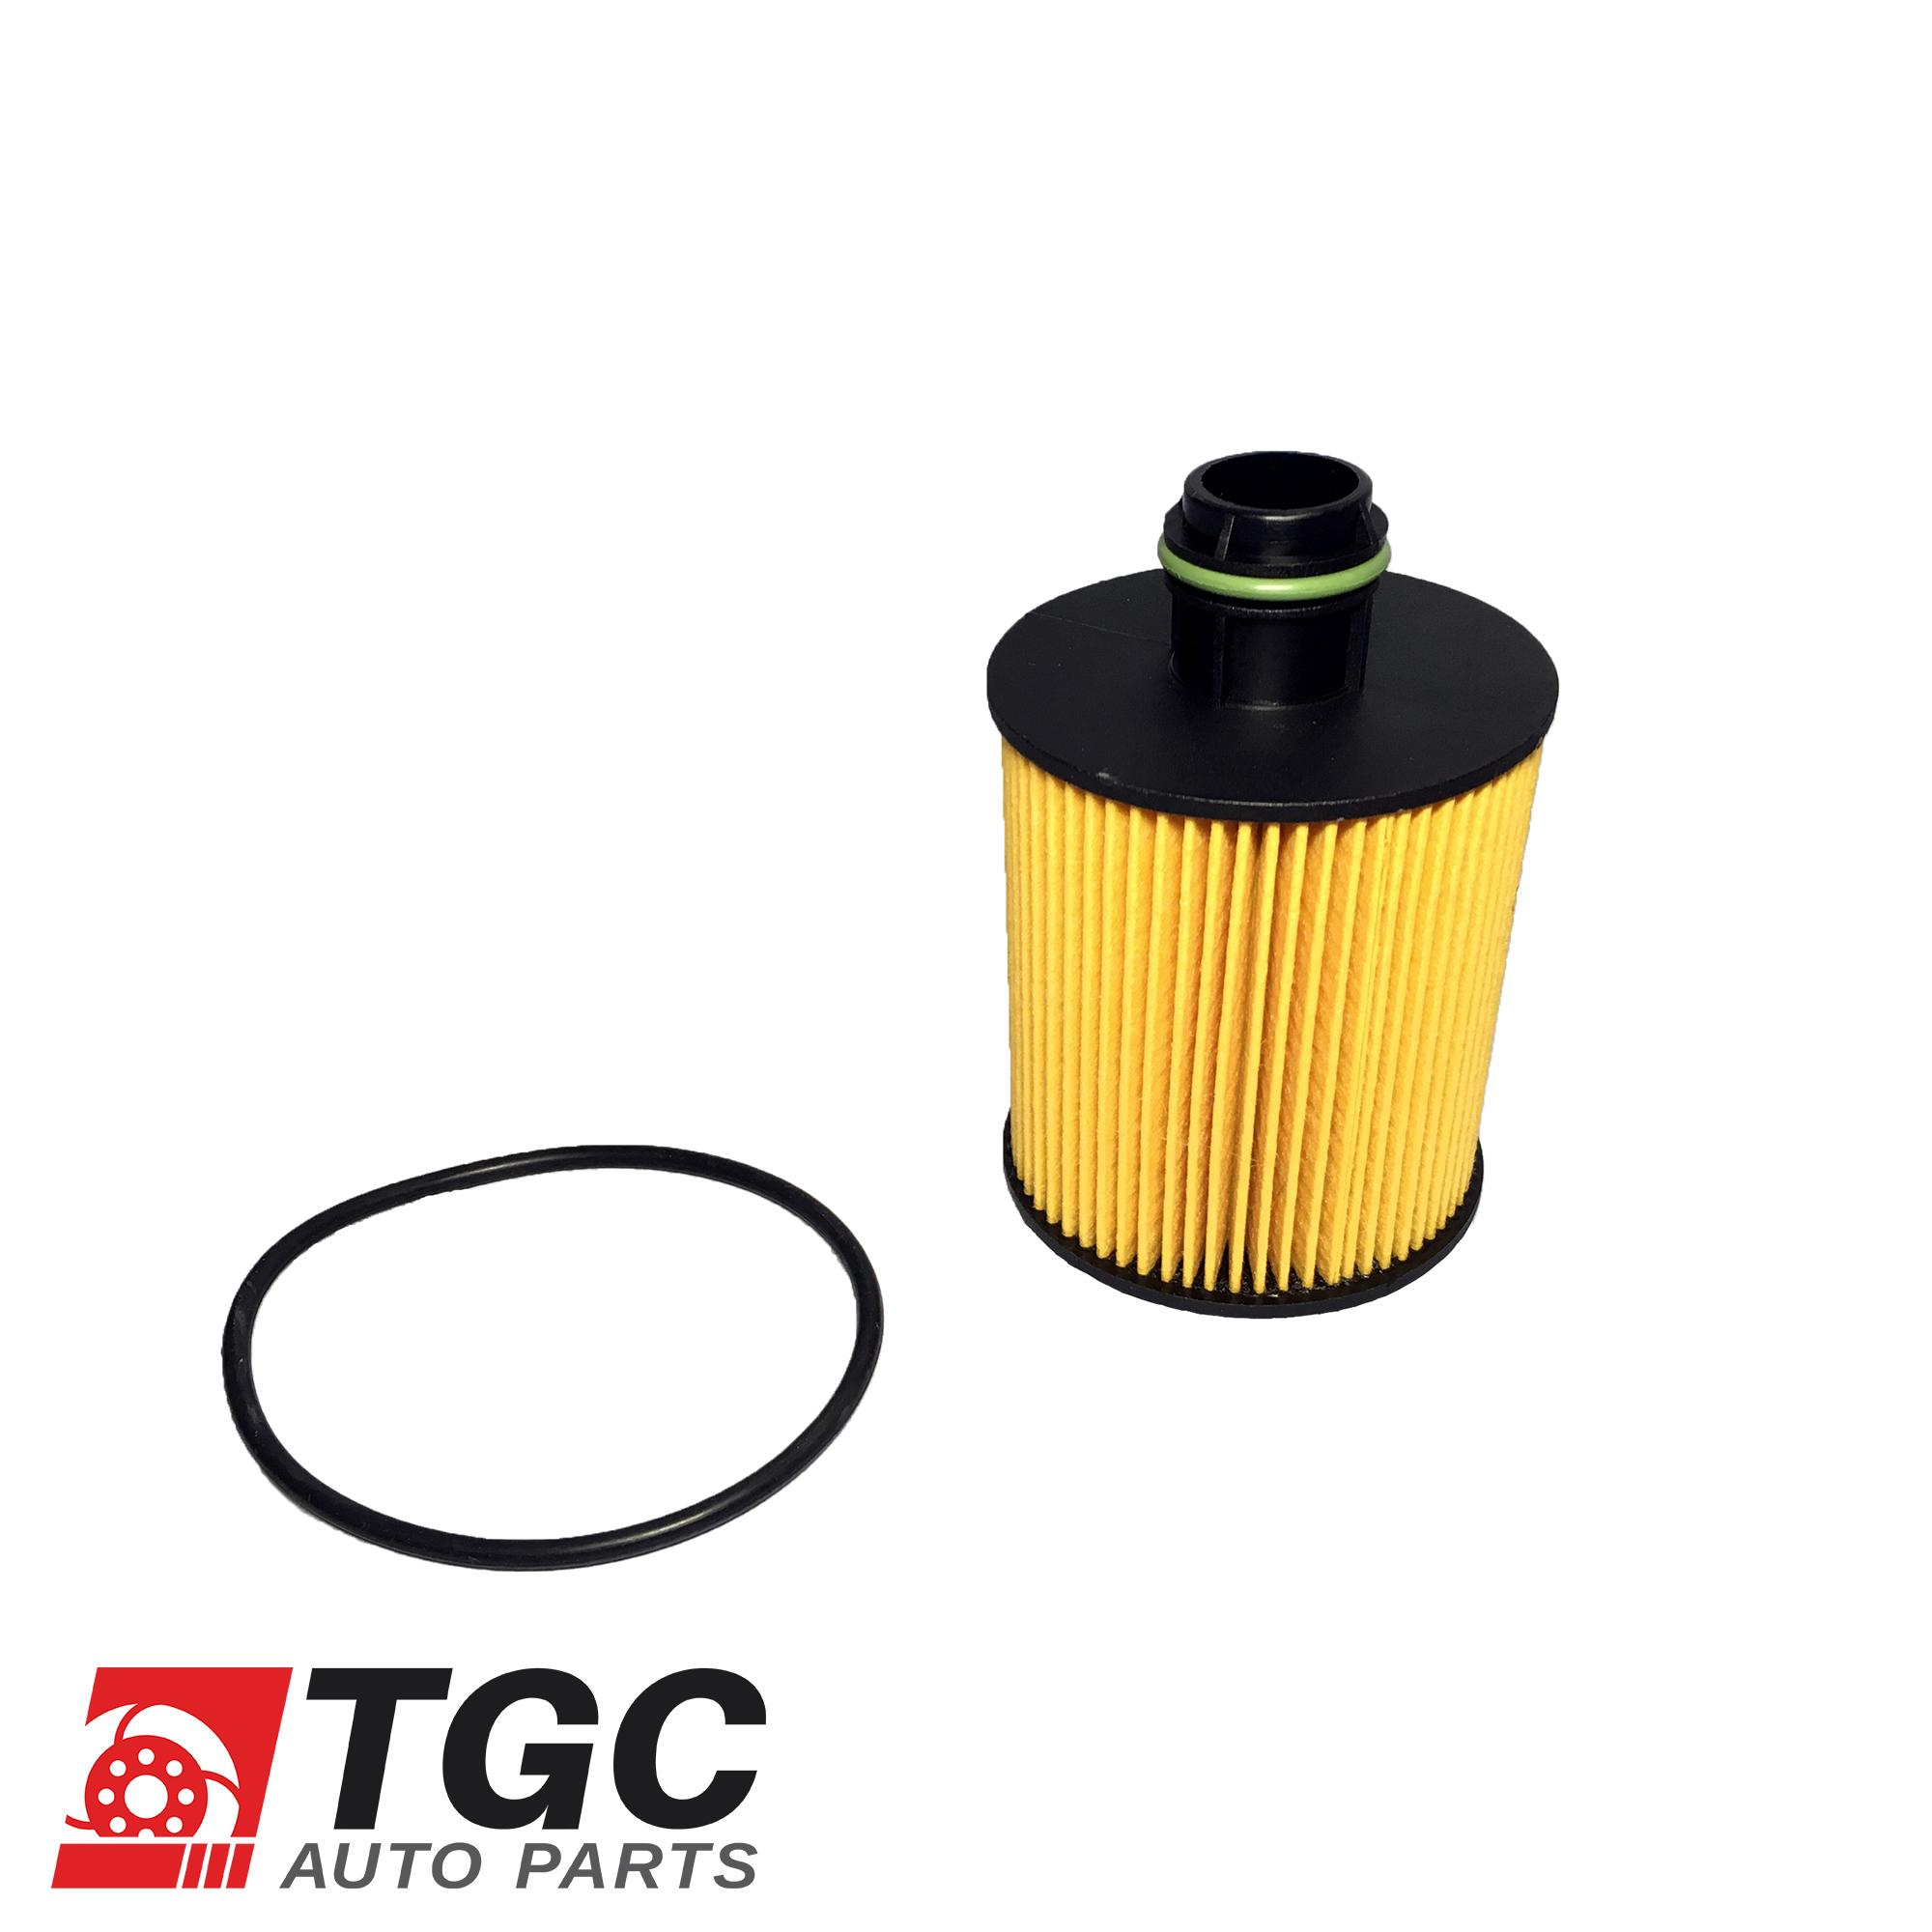 Oil Filter For Sale Adapter Online Brands Prices 4 Wheeler Fuel Fleetmax Fes 5714 Chevrolet Spin 13 Tcdi Dsl 2014 2017